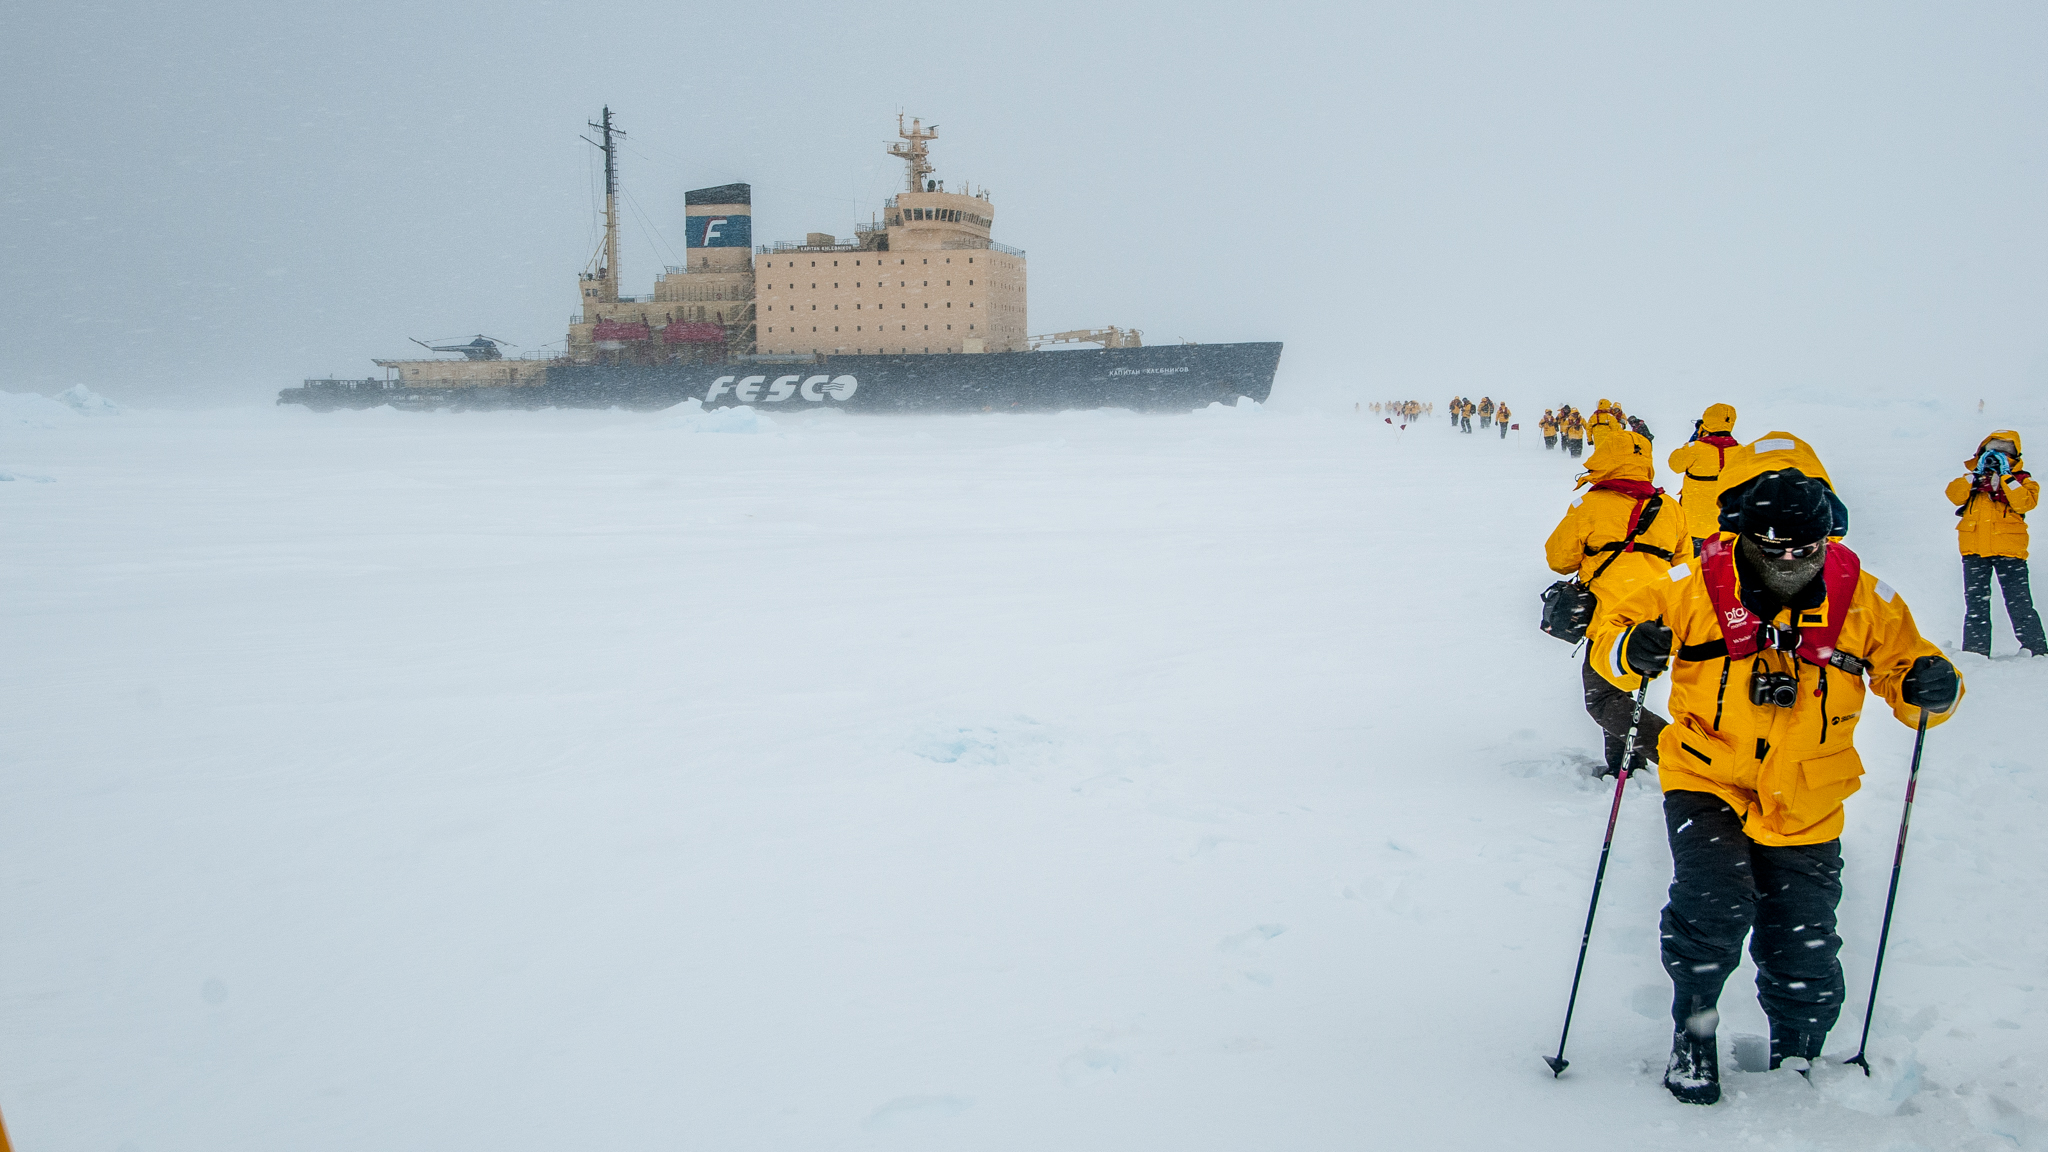 Excursion on the Weddell Sea